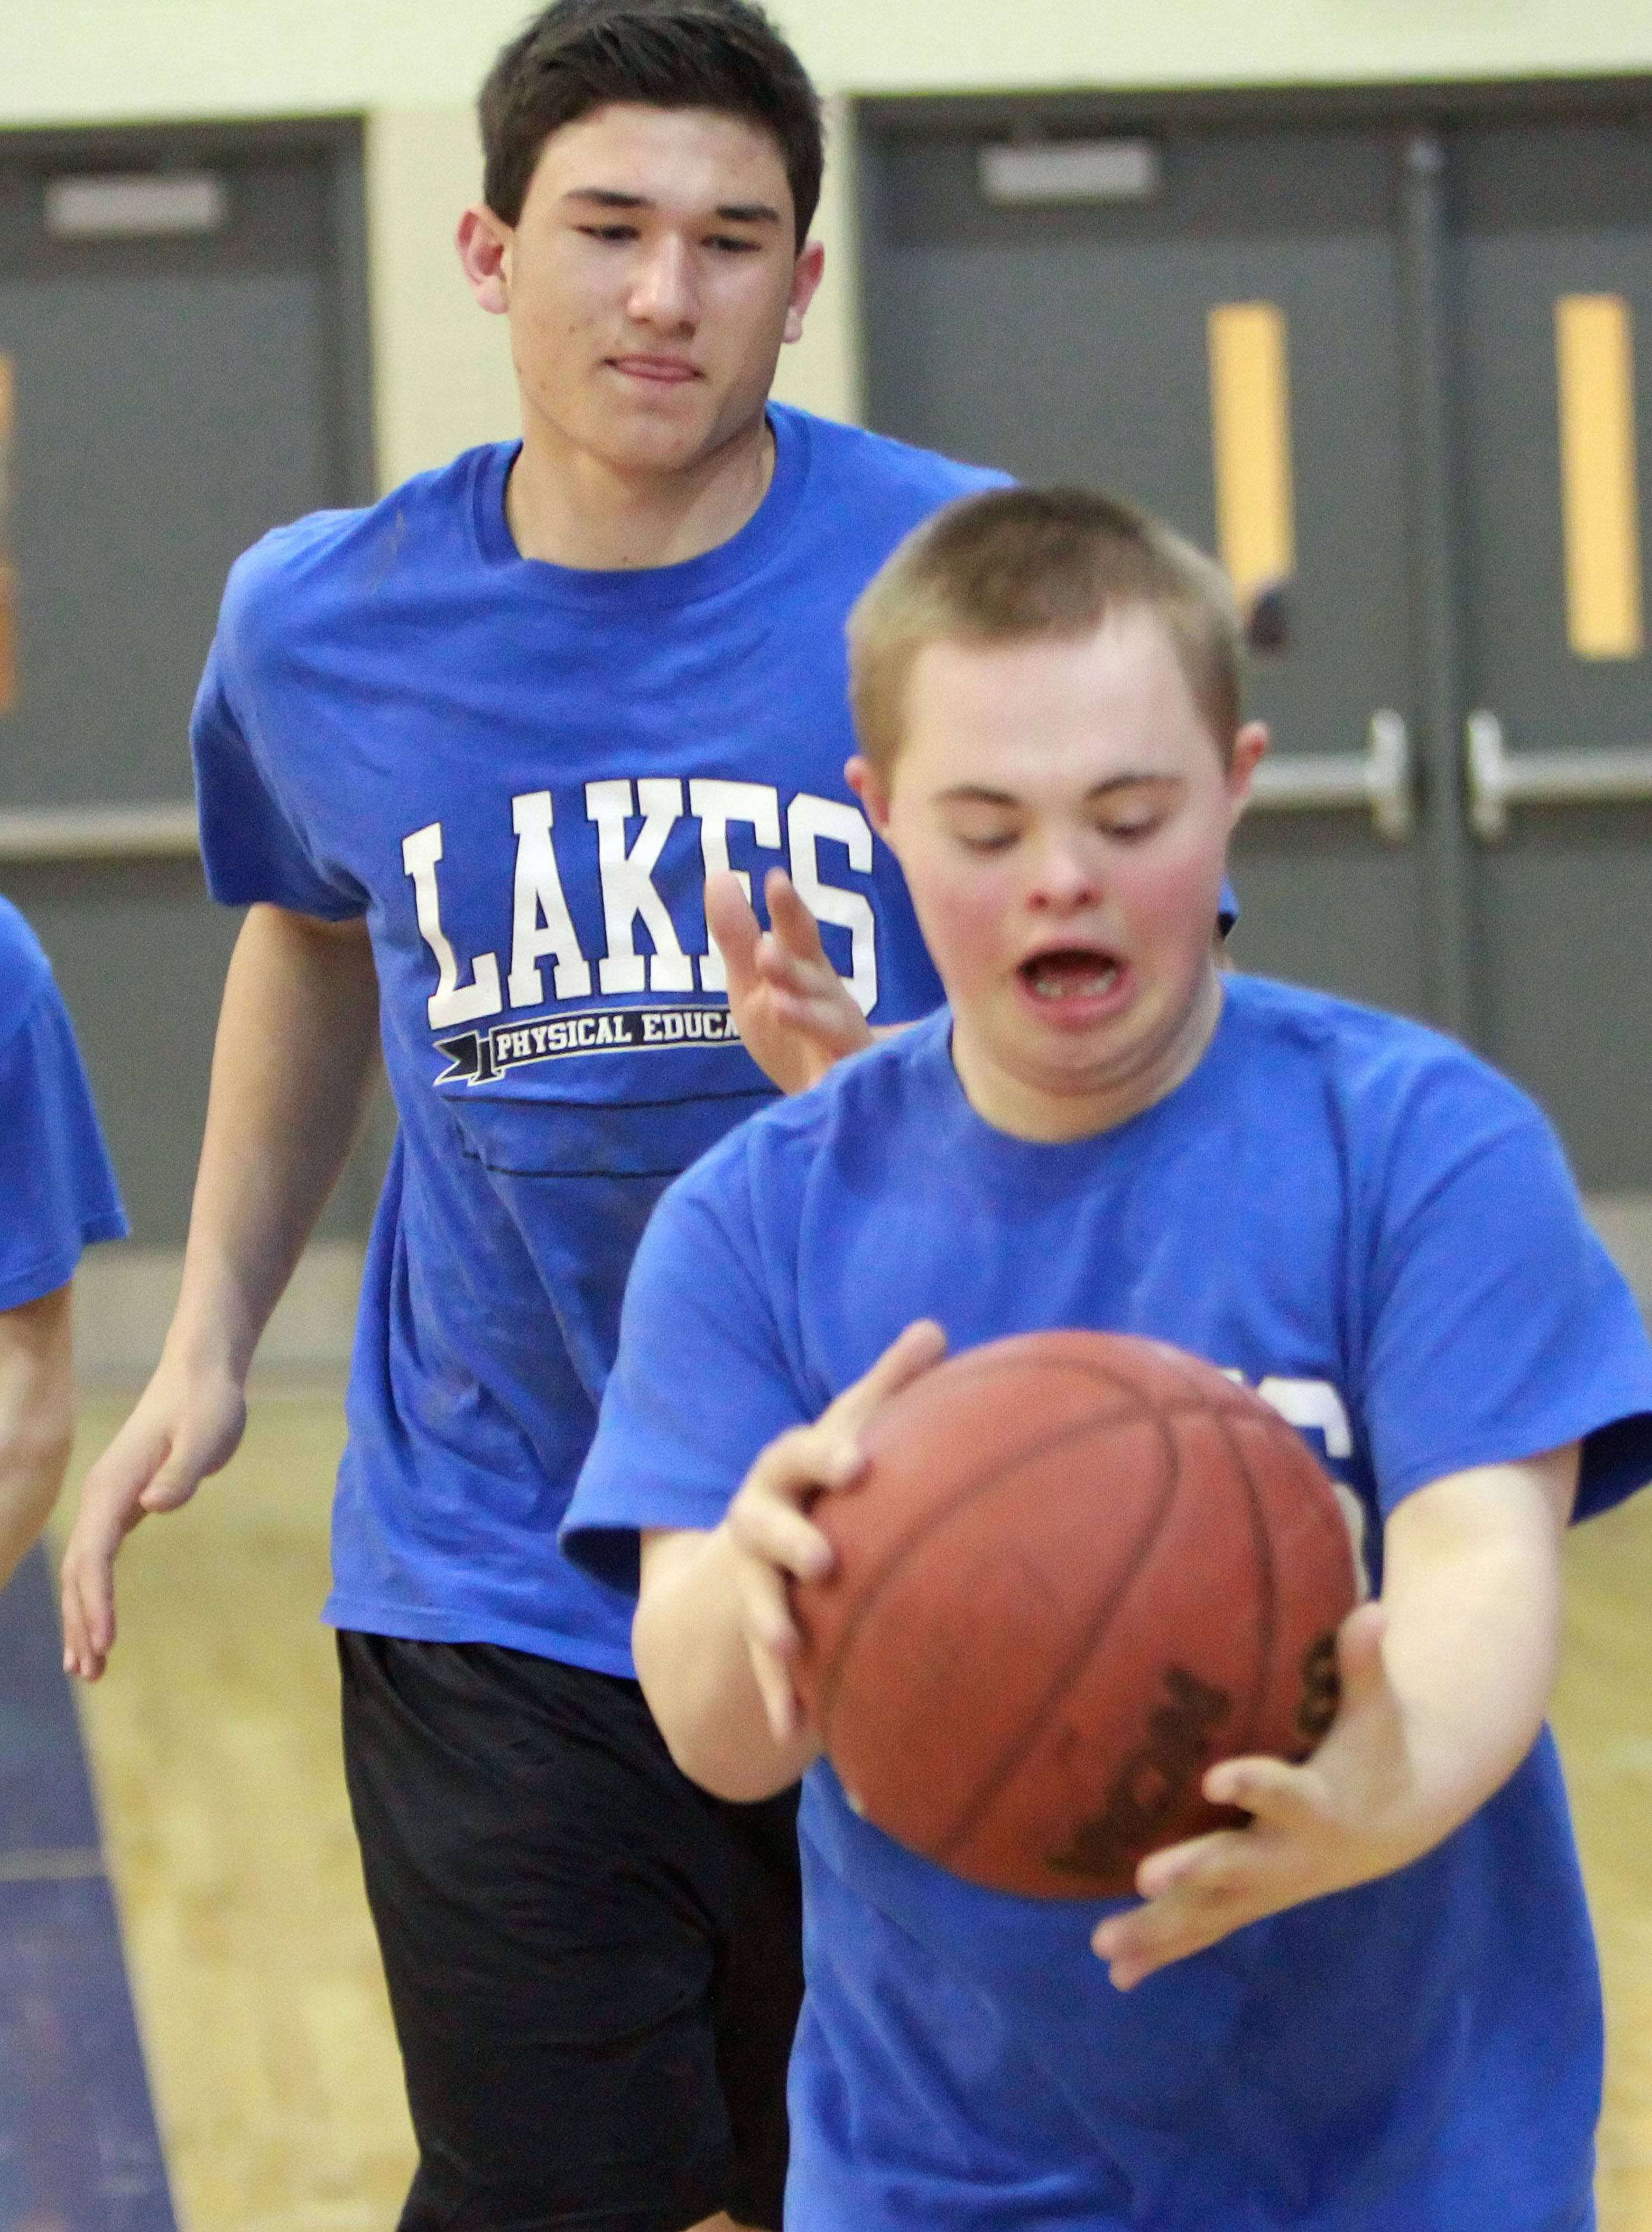 Lakes outfielder Ethan Sage, left, works with 15-year-old Matthew Kramer, who has Downs Syndrome, during PE class Thursday. Sage helped to start a Big Buddies program at Lakes High School that works with special needs male students to help them fit in at school.